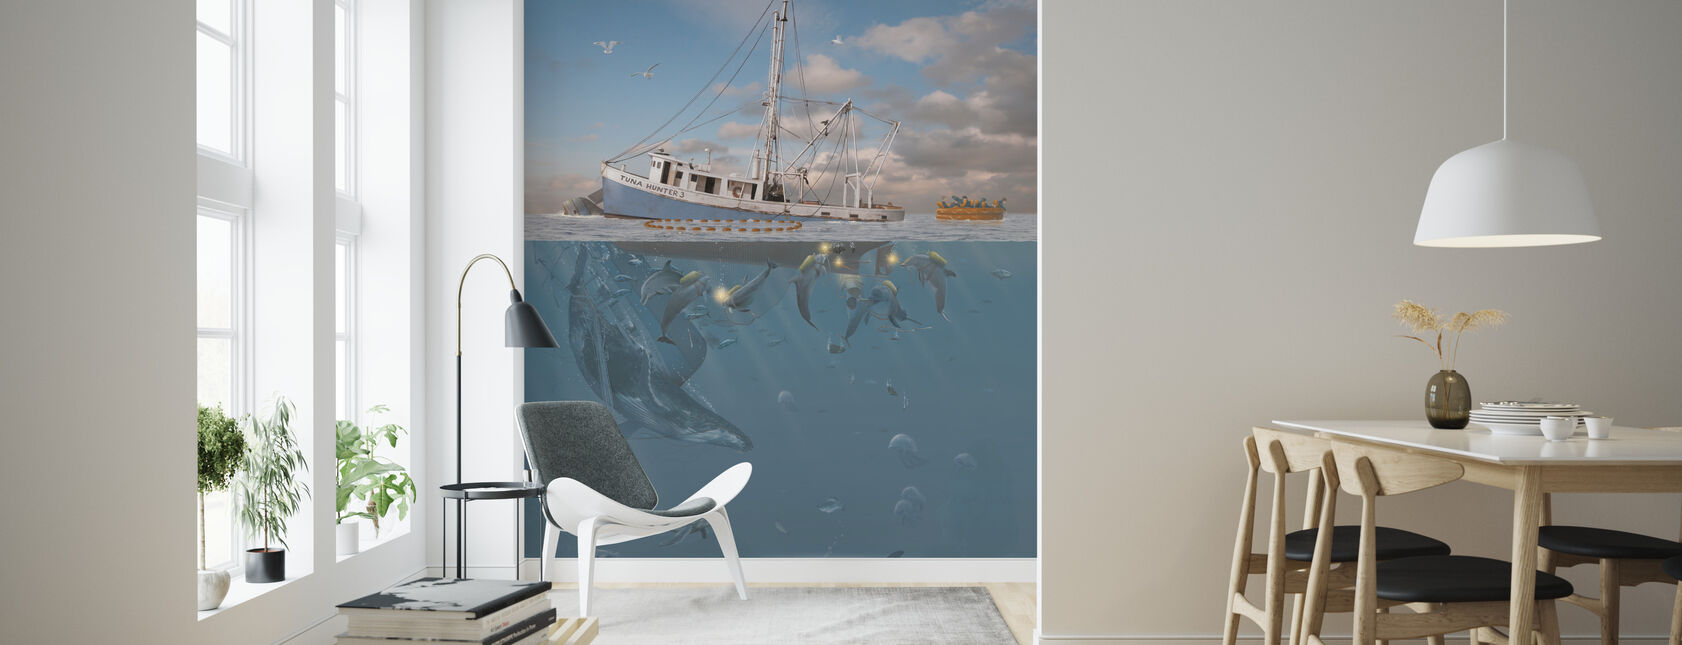 Rage of the Dolphin - Wallpaper - Living Room